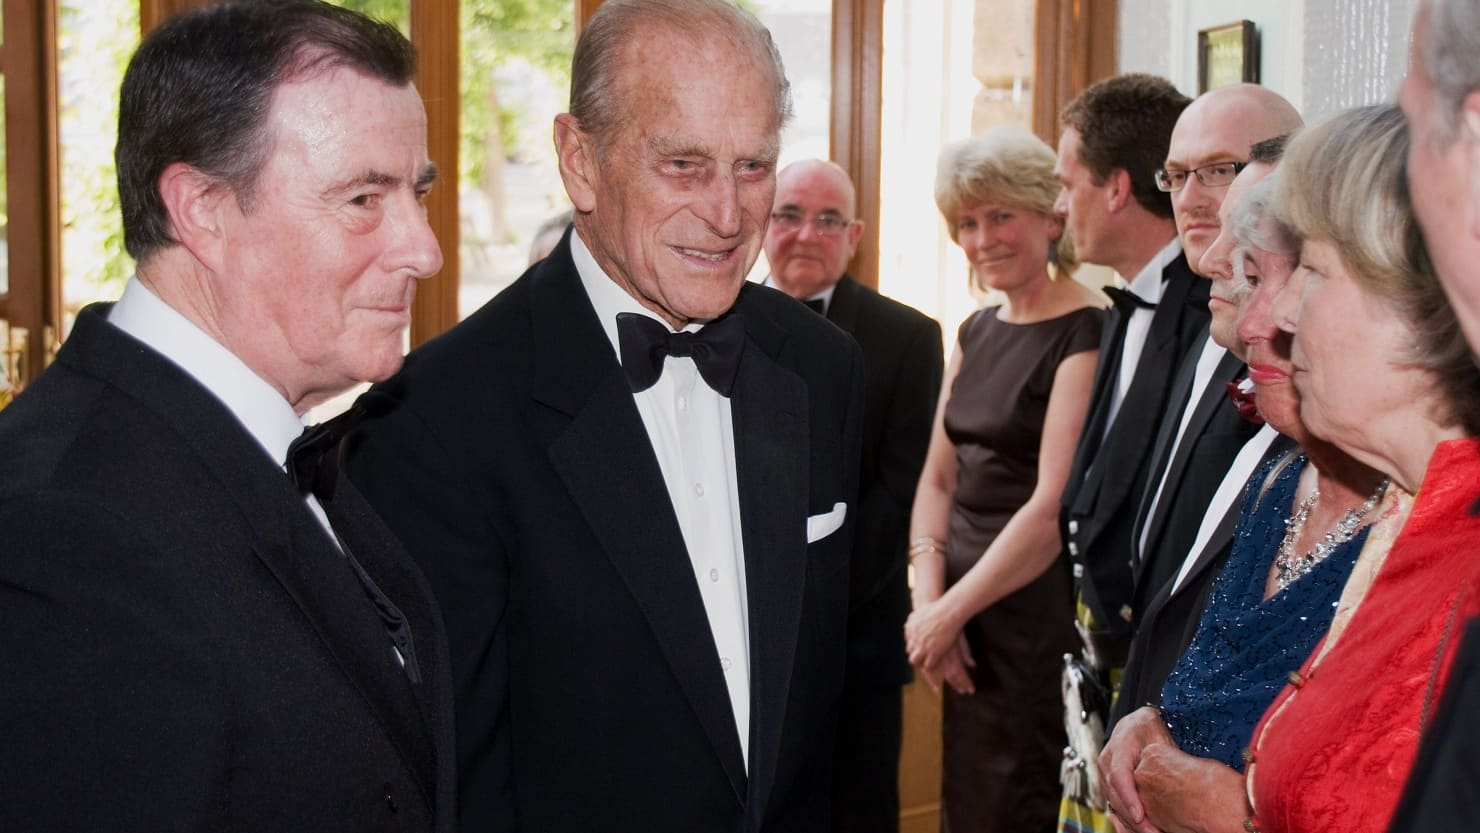 The Box | Plymouth pays its respects to His Royal Highness The Prince Philip, Duke of Edinburgh